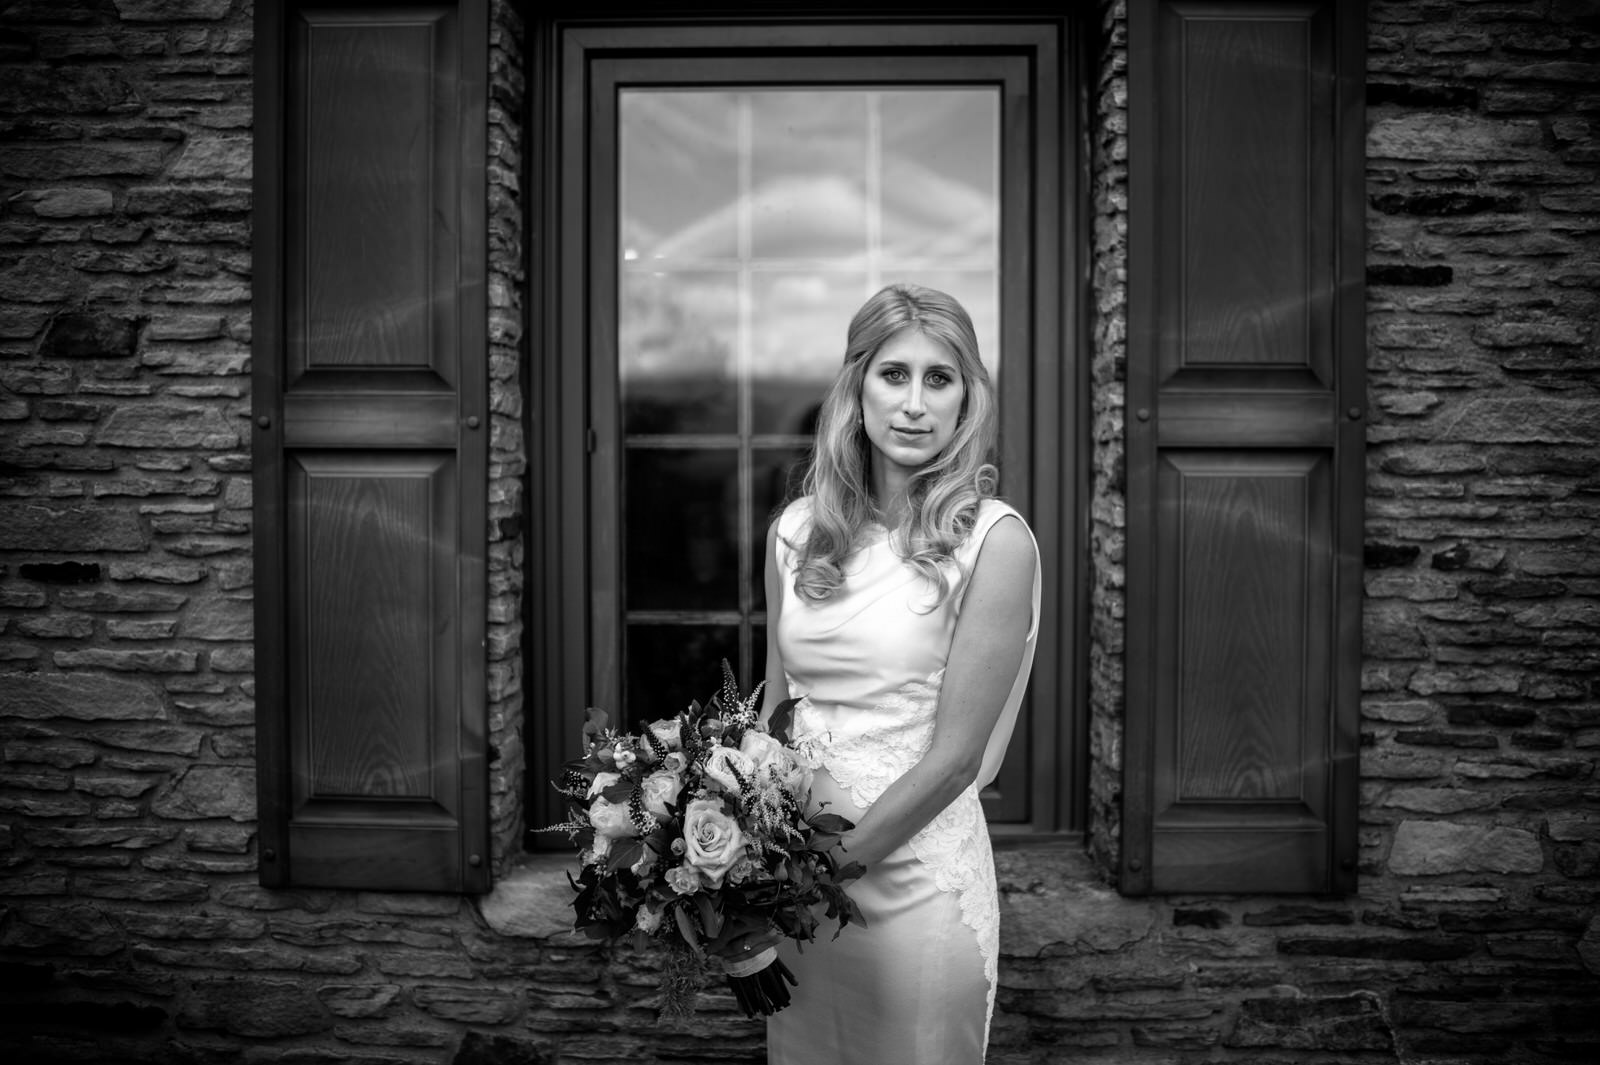 Elegant bride in black and white portrait